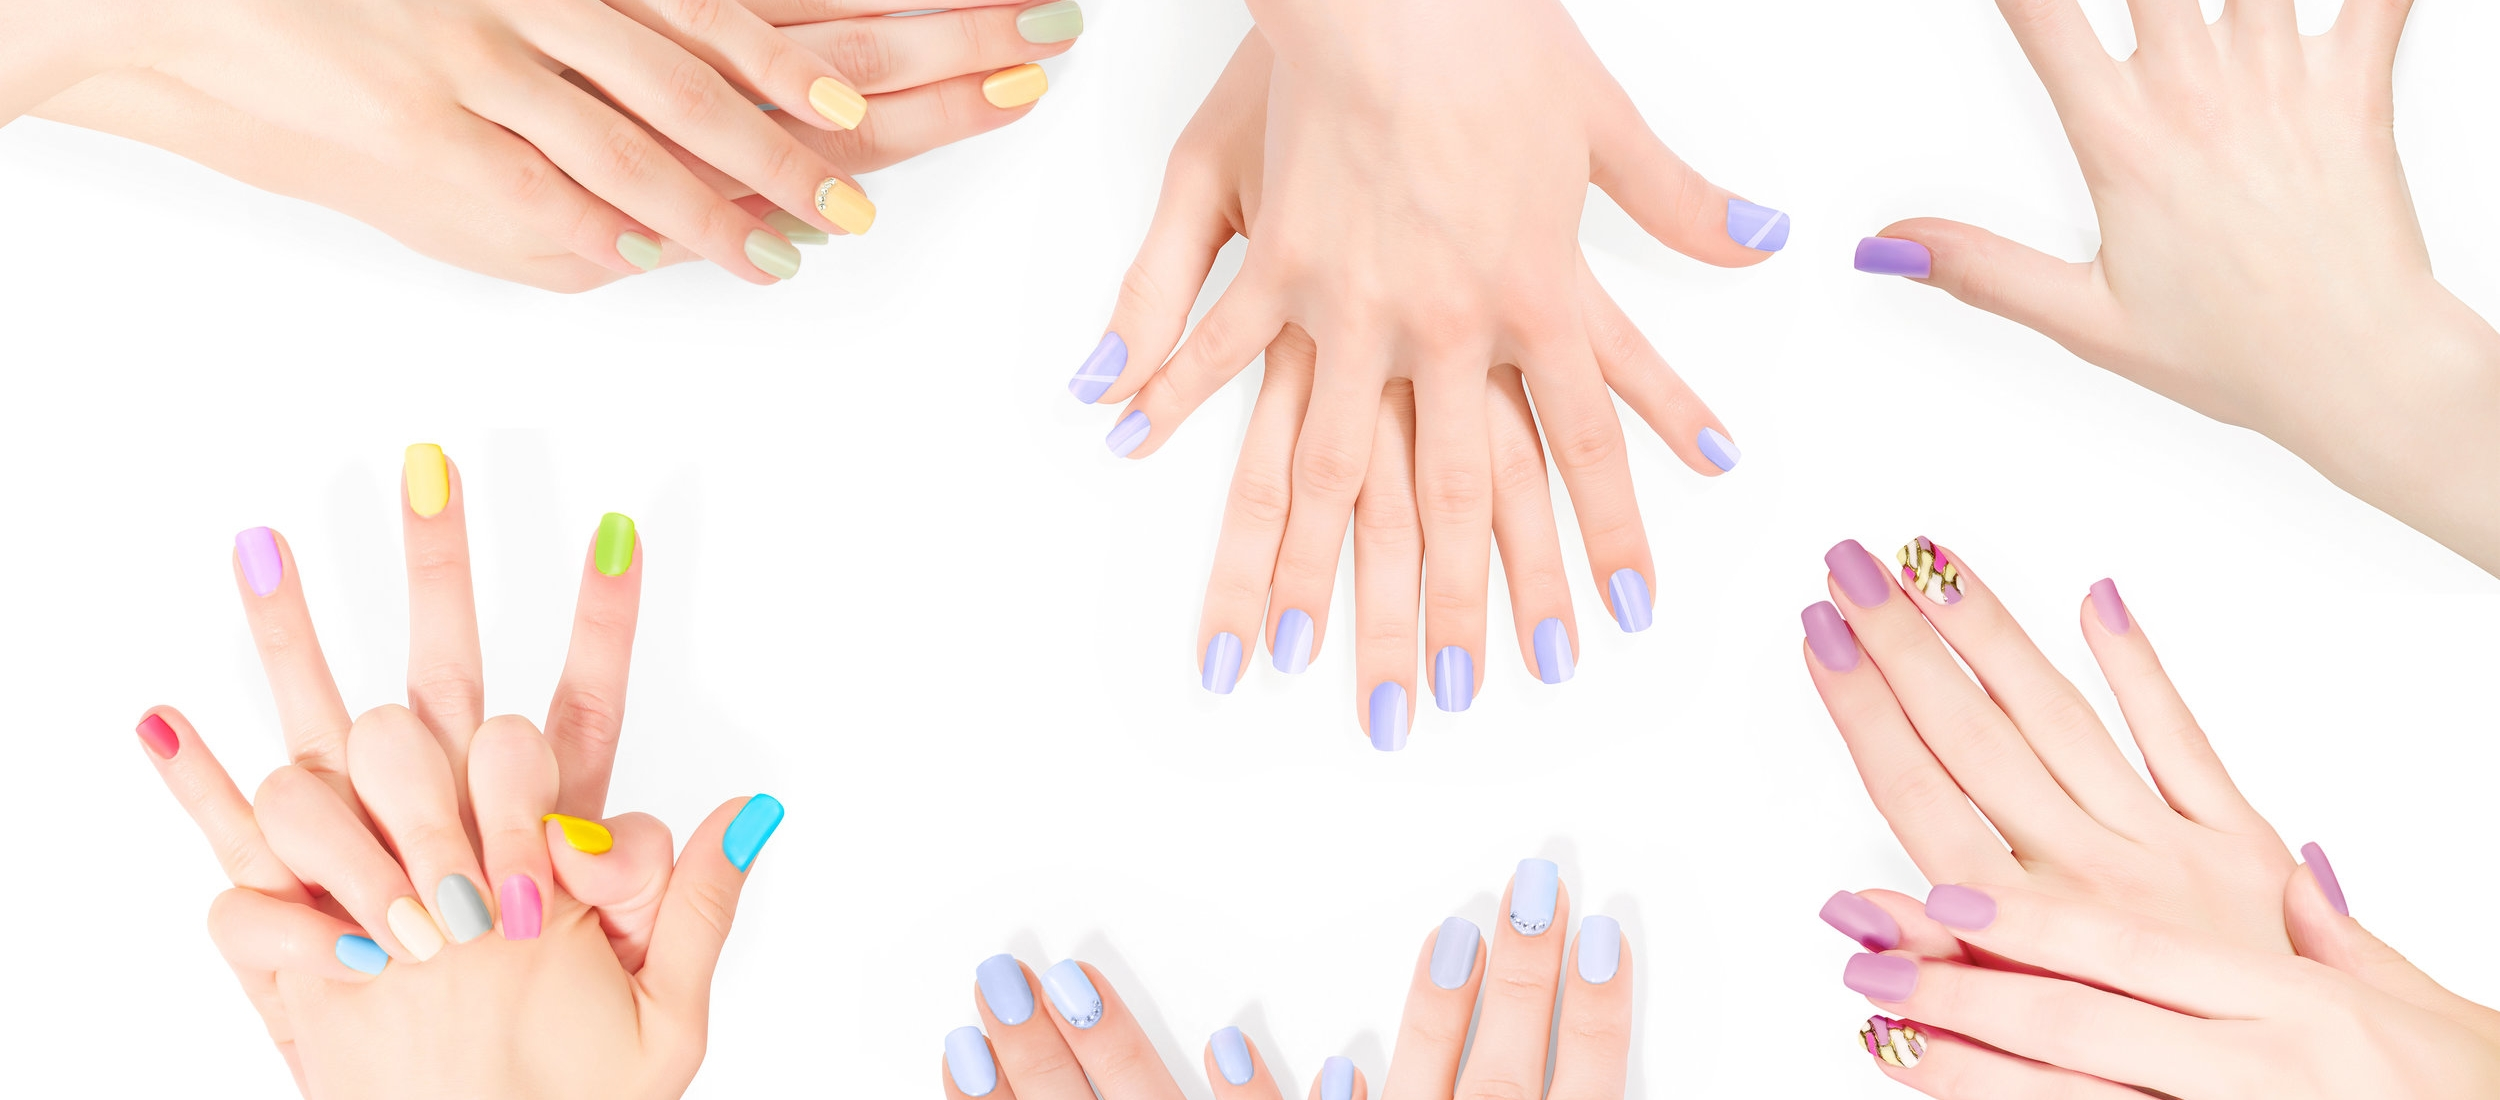 Bundle of hands with shellac art manicure